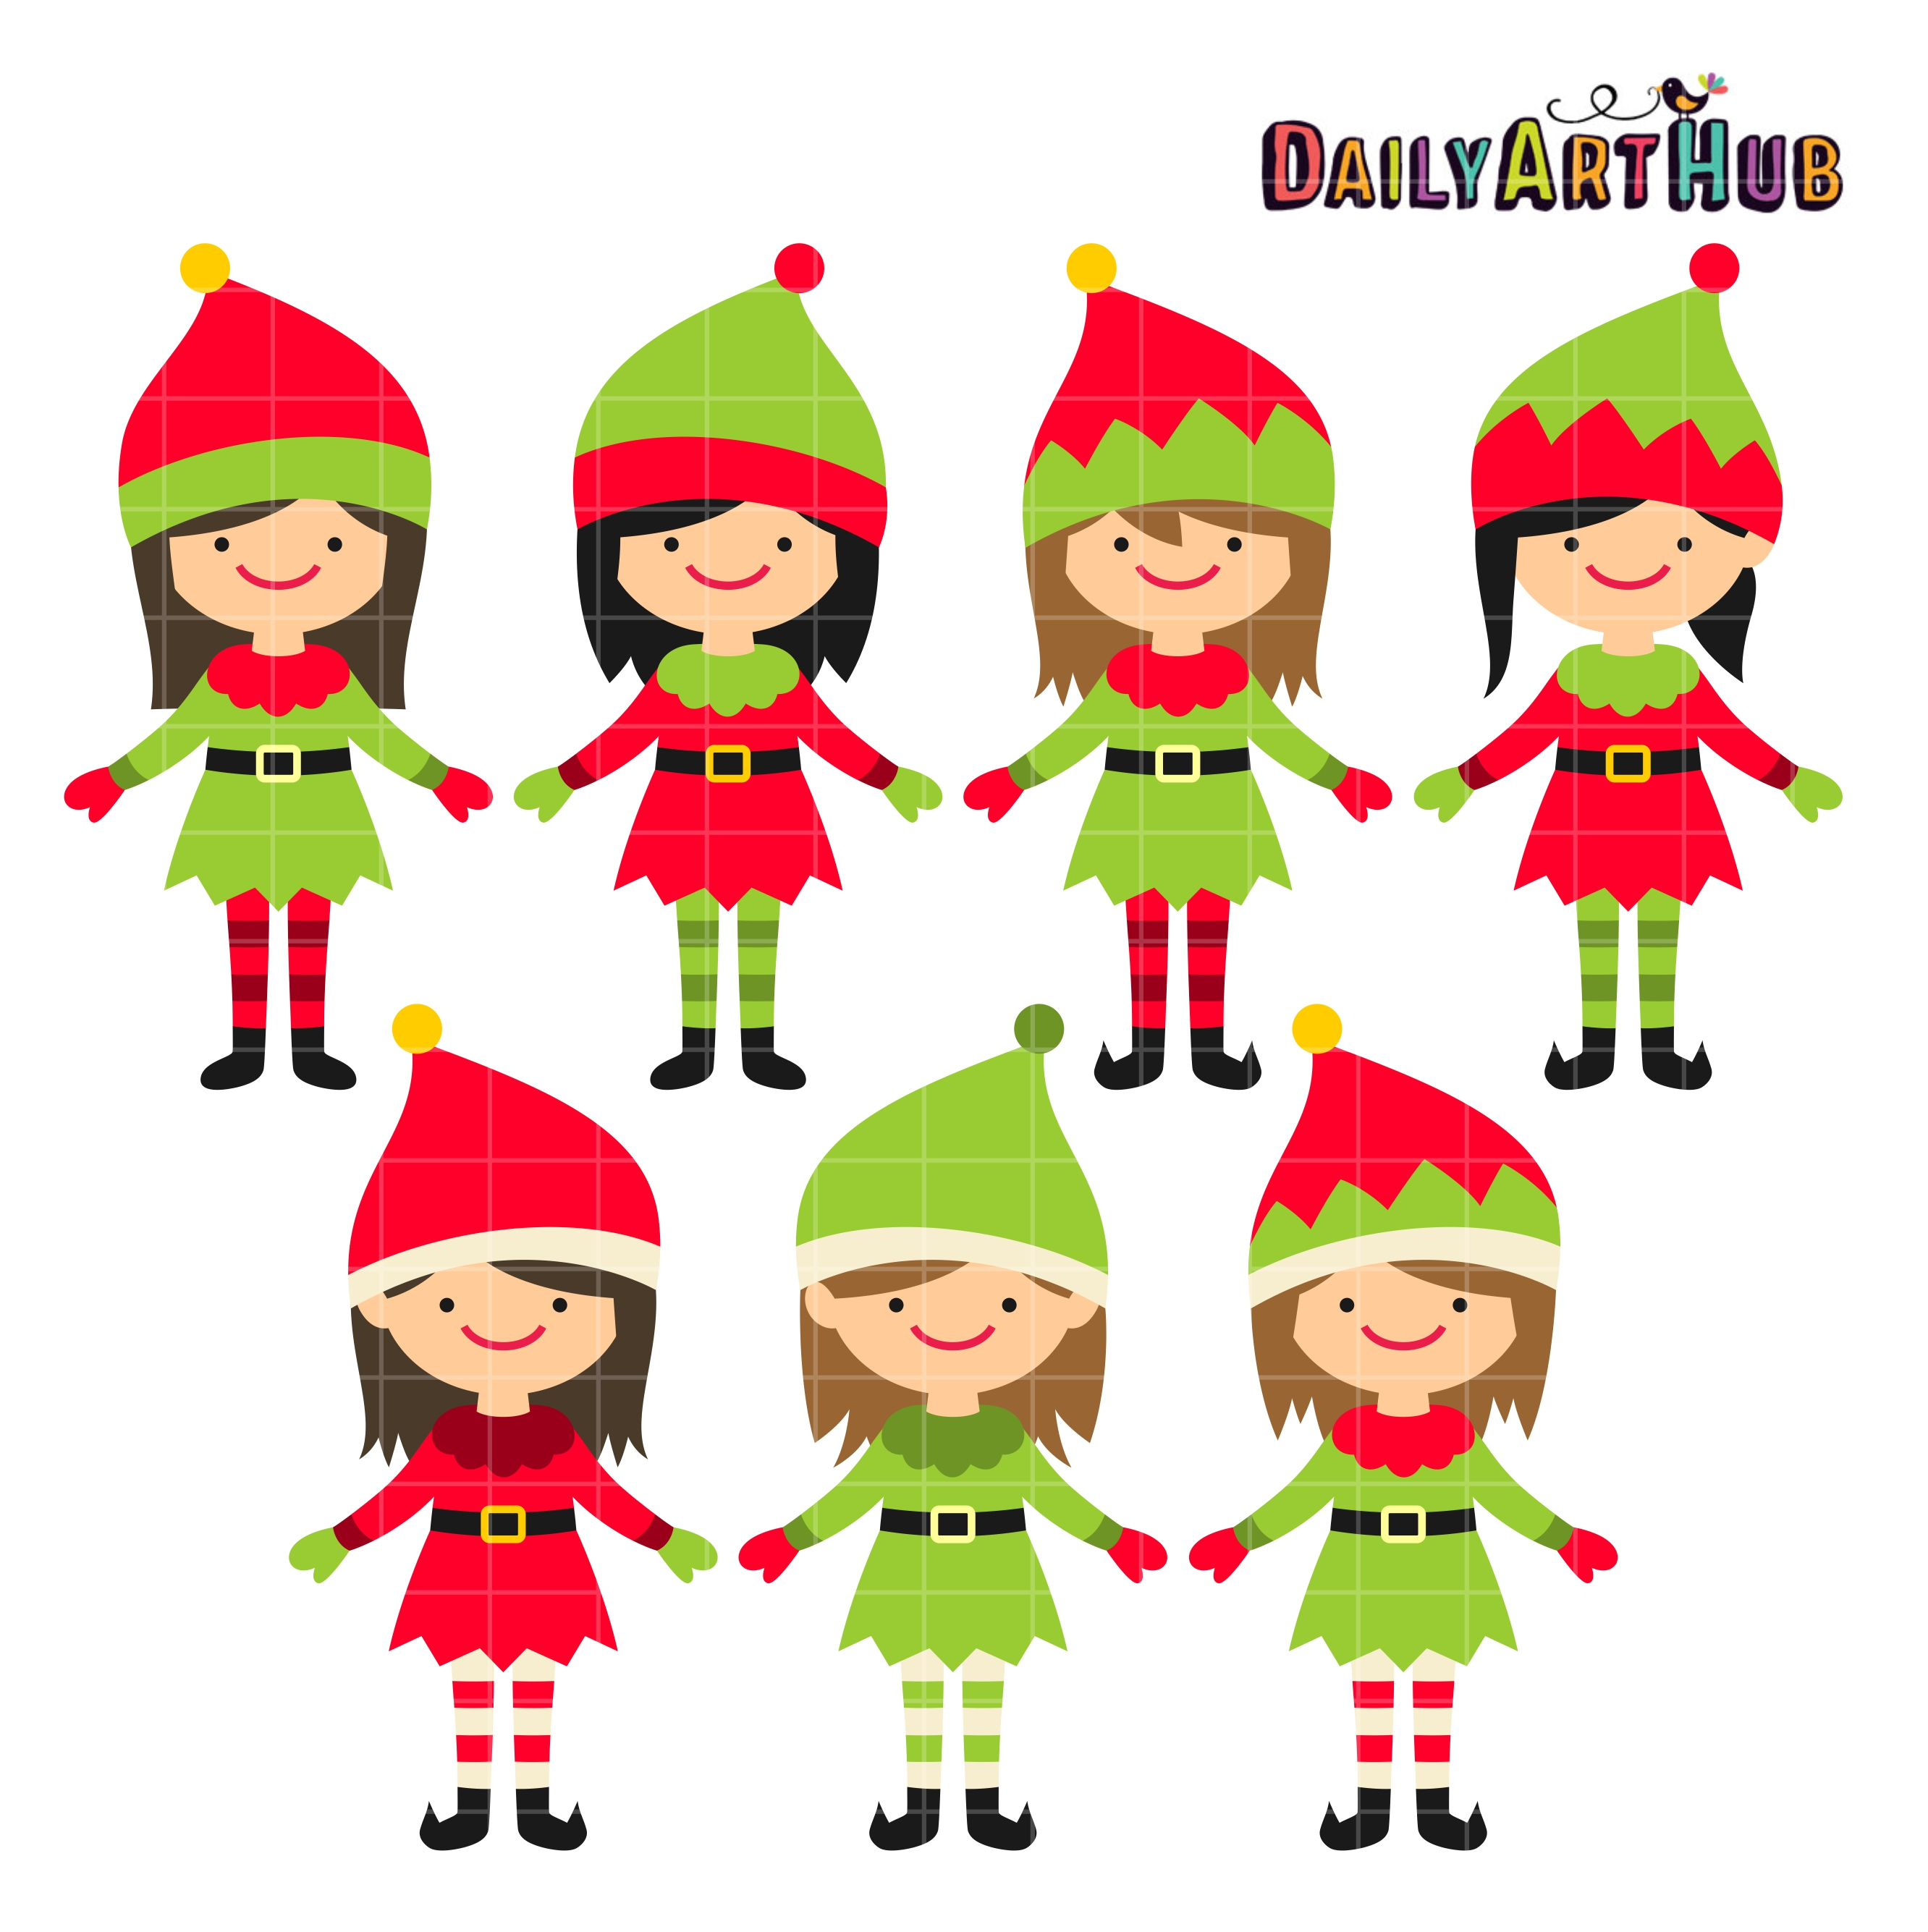 christmas cute elves clip art set daily art hub free clip art rh dailyarthub com  resale clipart license